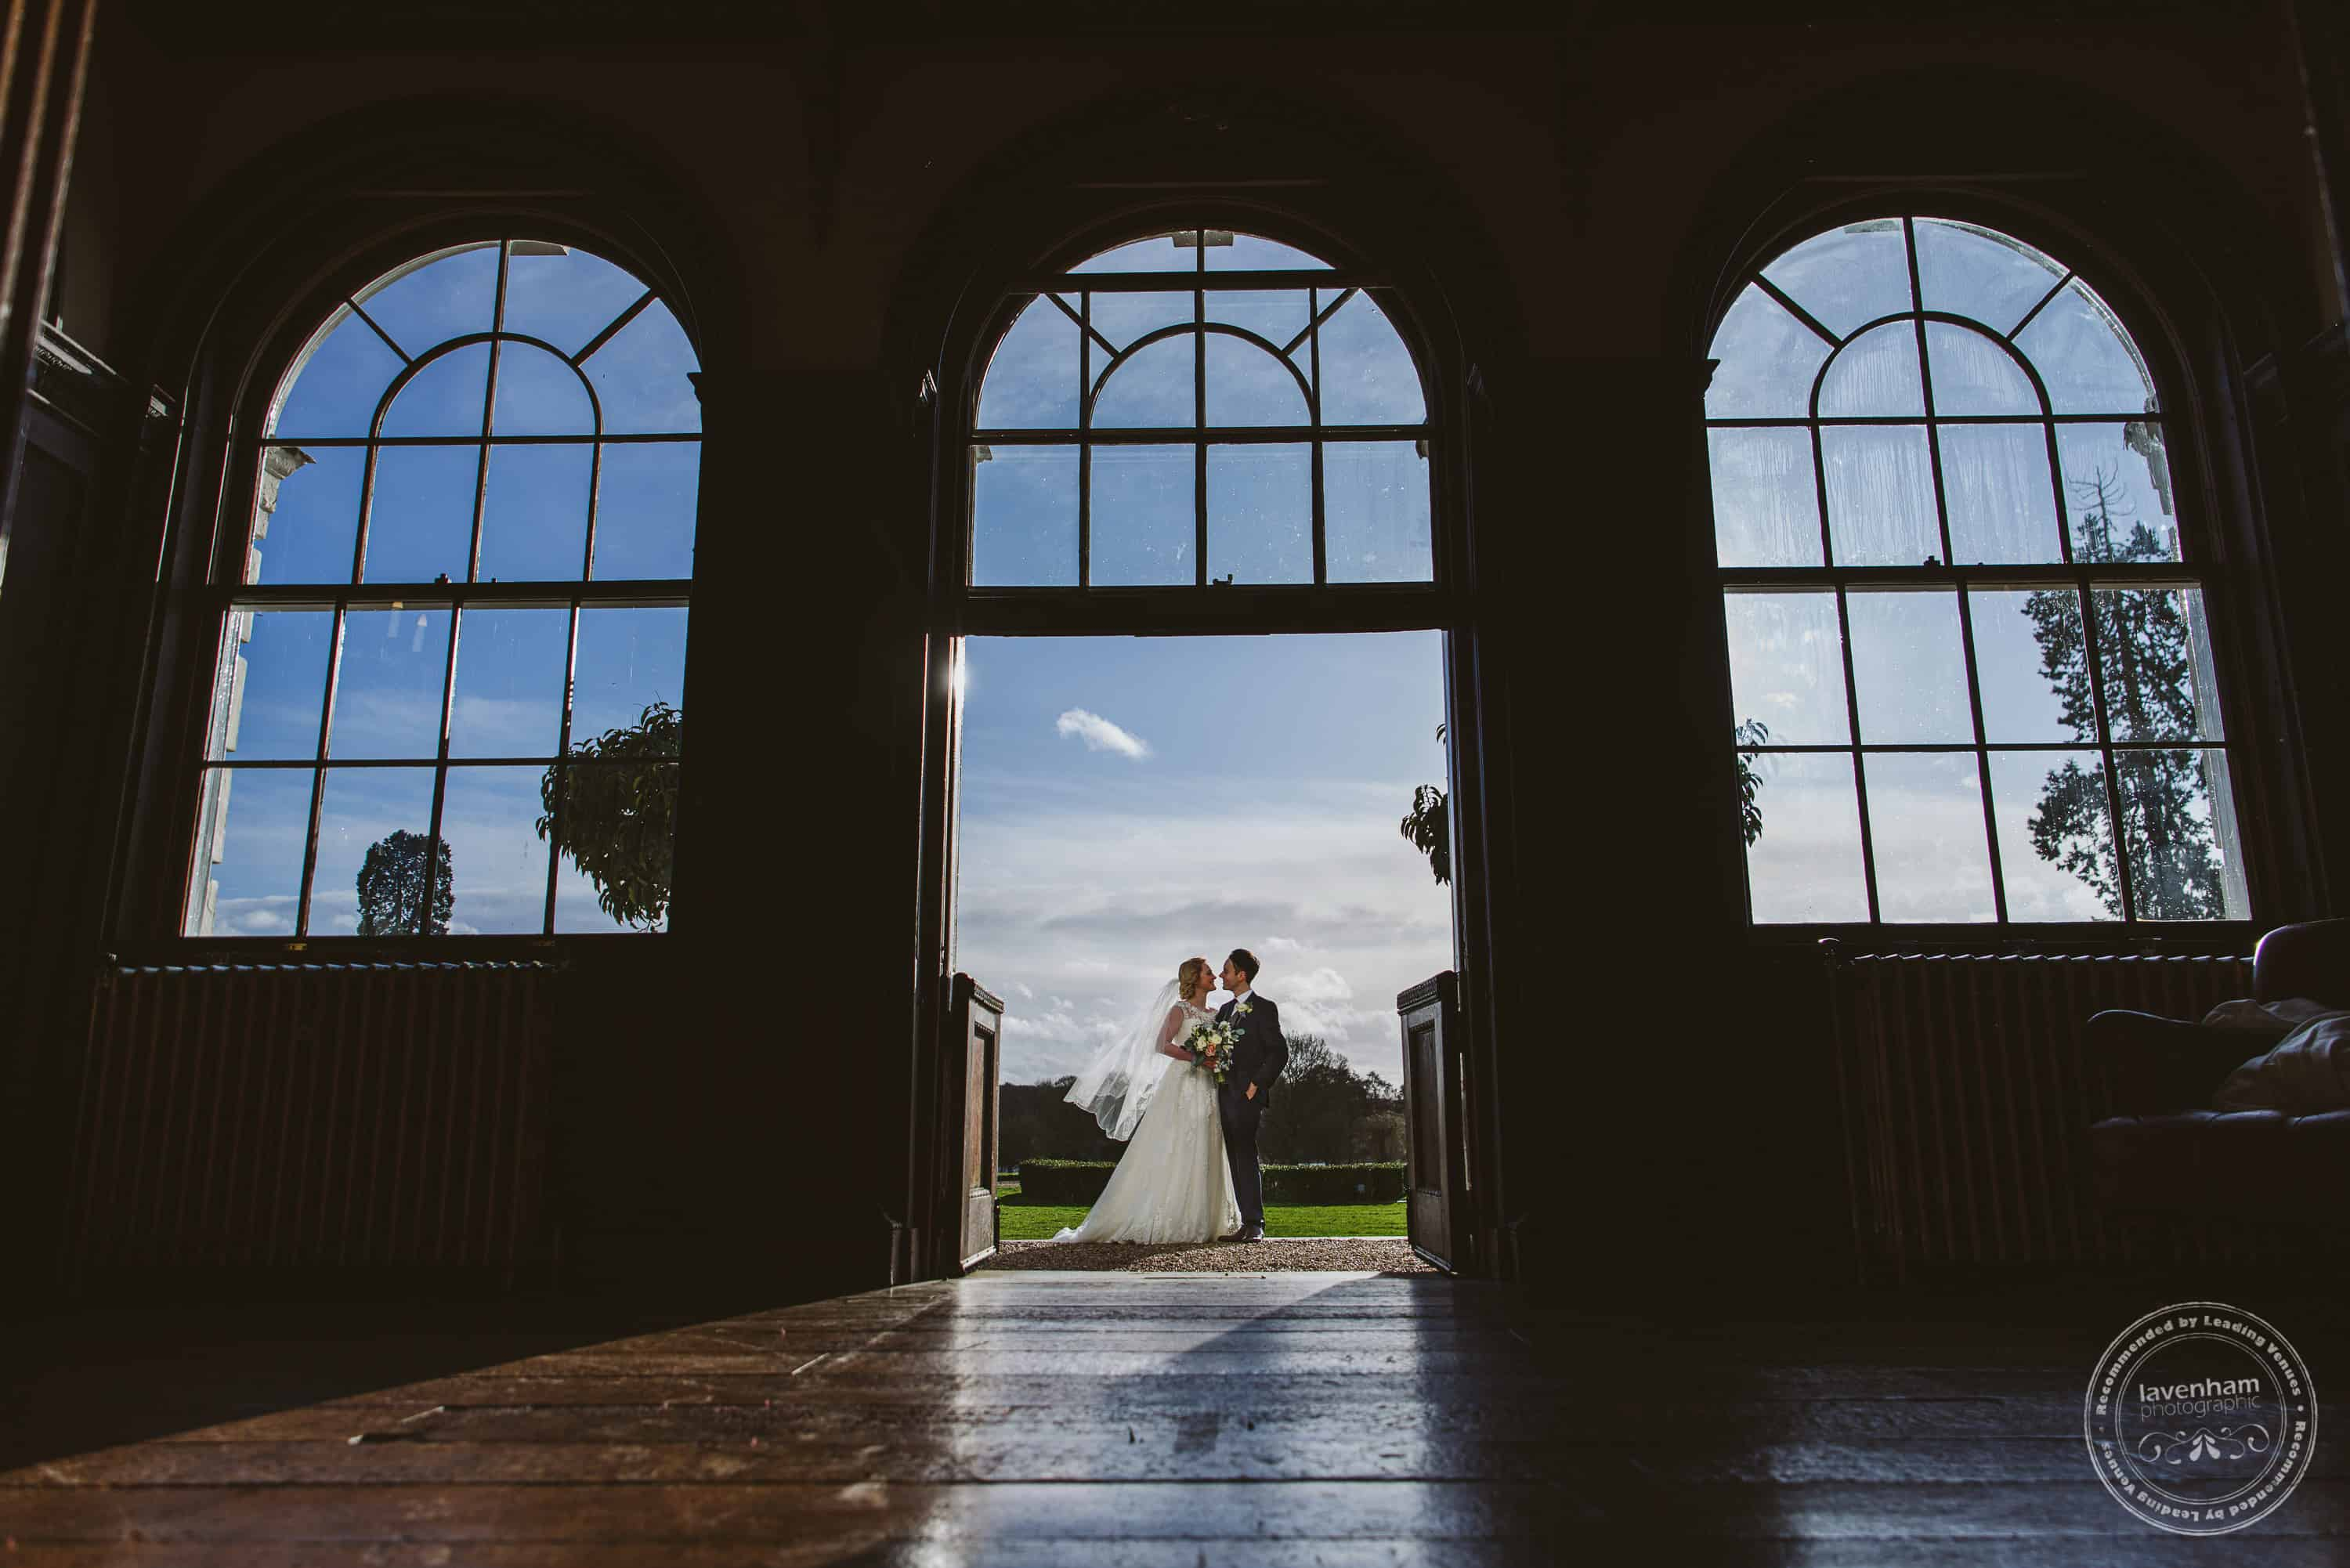 Framing a photograph in a doorway of arched window is always effective! Even better with three arches!